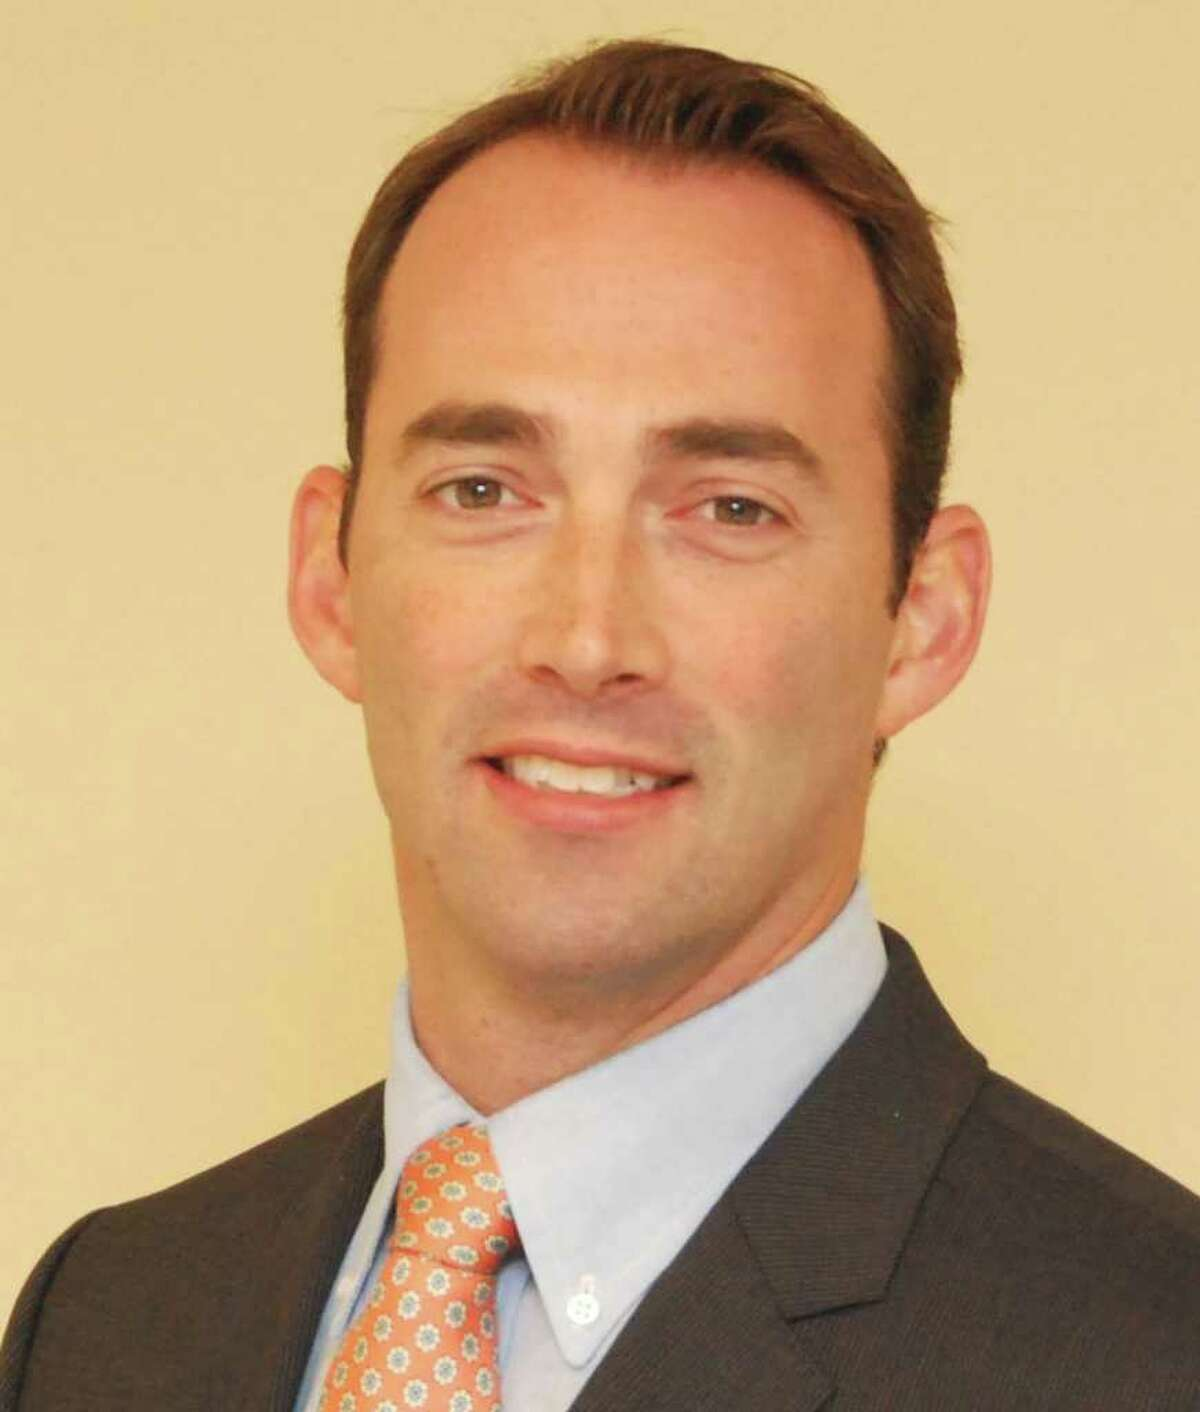 Thomas Cragg has been named mortgage loan officer at The Bank of New Canaan, The Bank of Fairfield and Stamford First Bank, a division of The Bank of New Canaan.